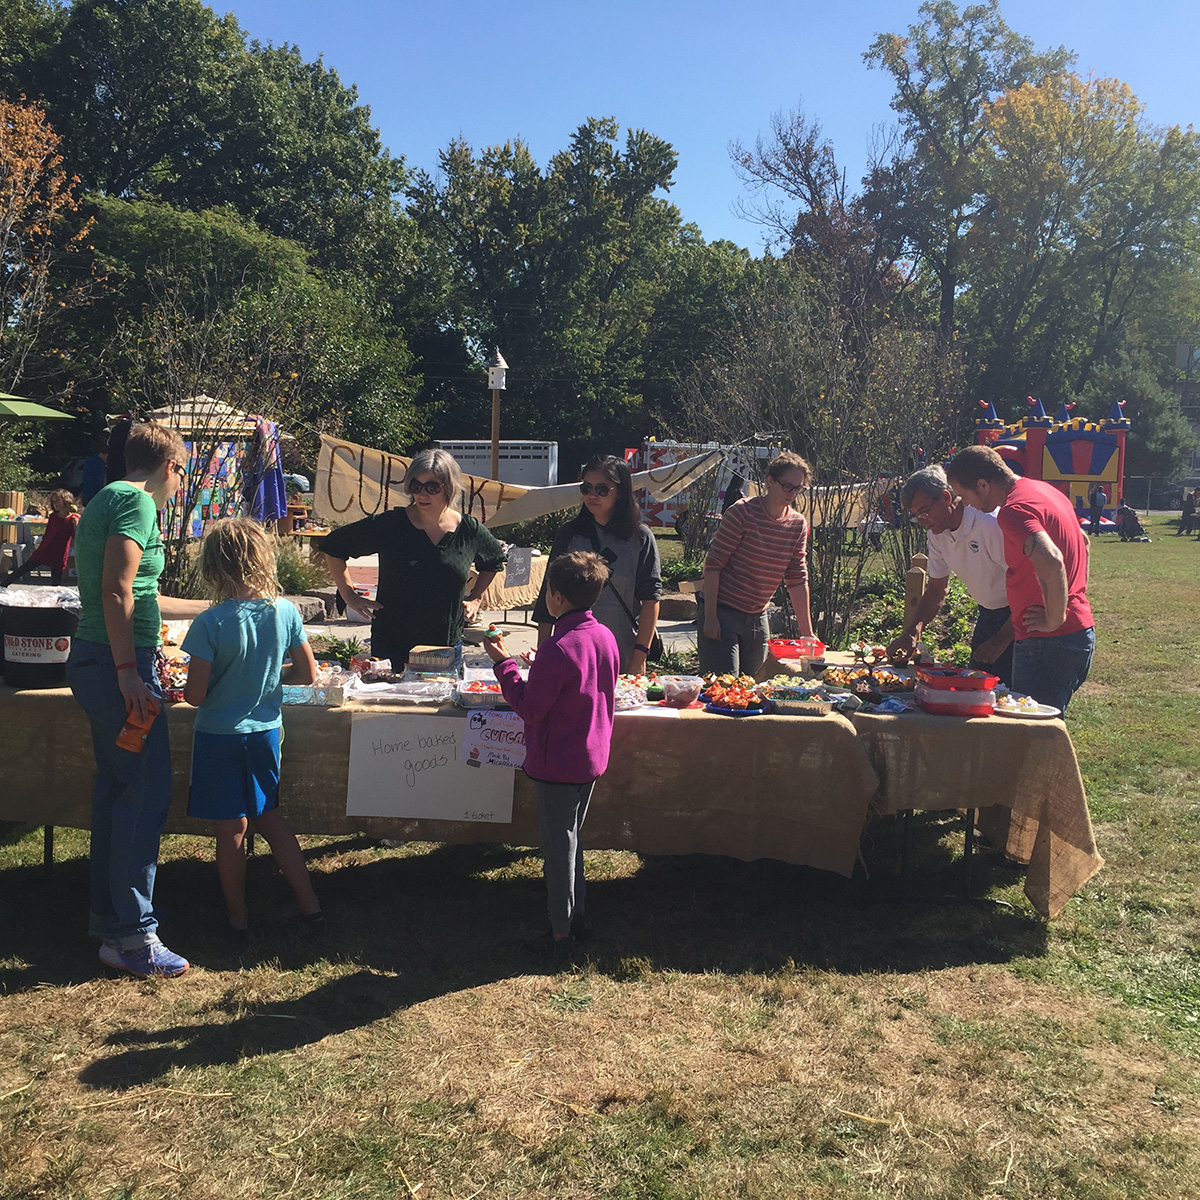 harvest-fest-2016-poe-cupcake-table-2-cropped